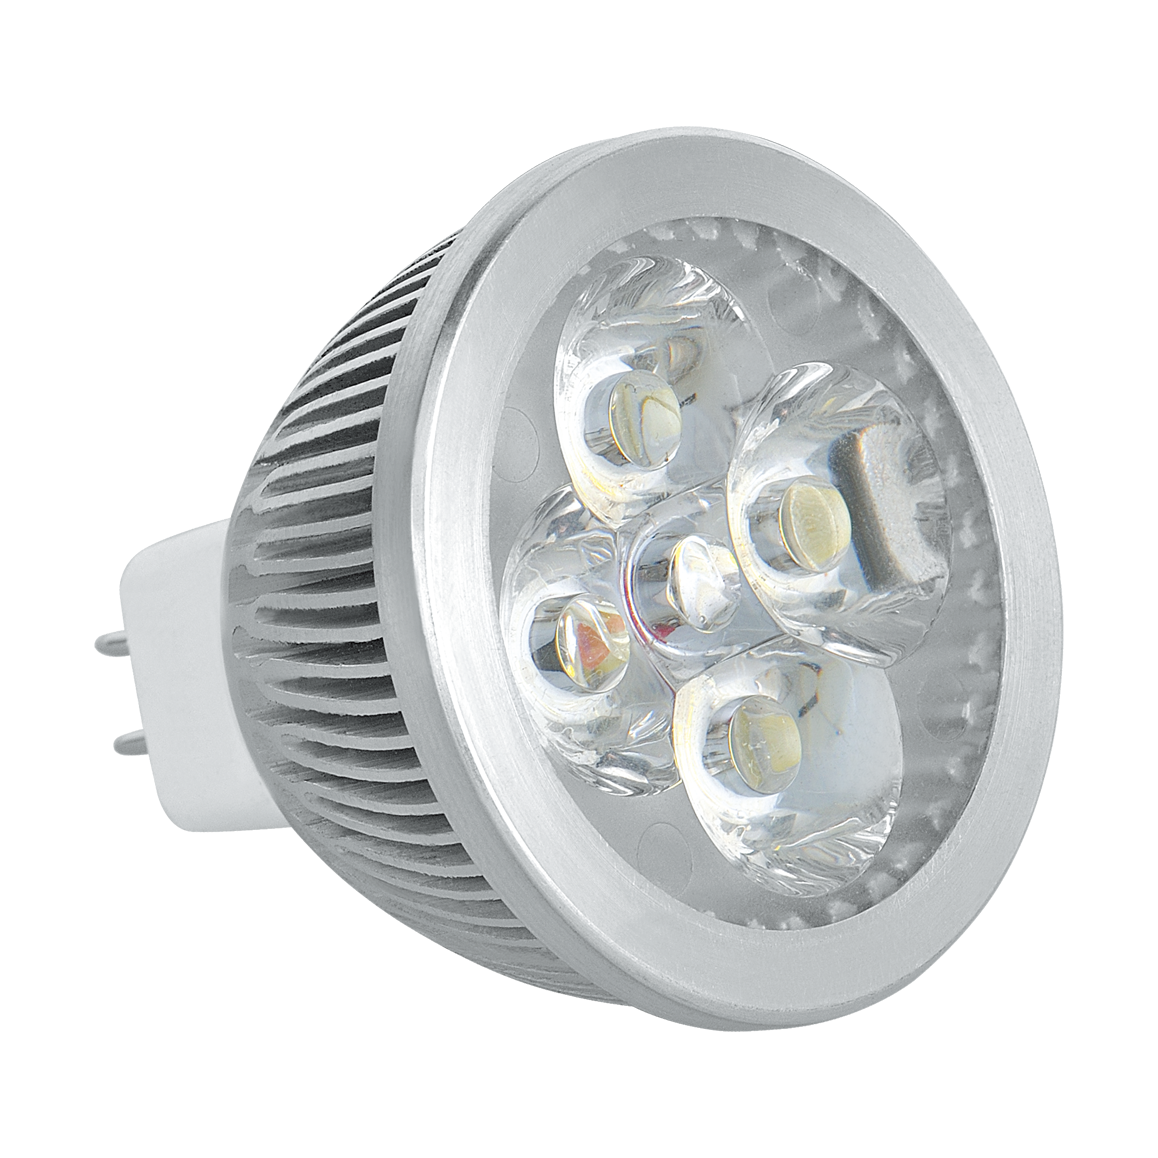 LED Lighting - Click to Learn More